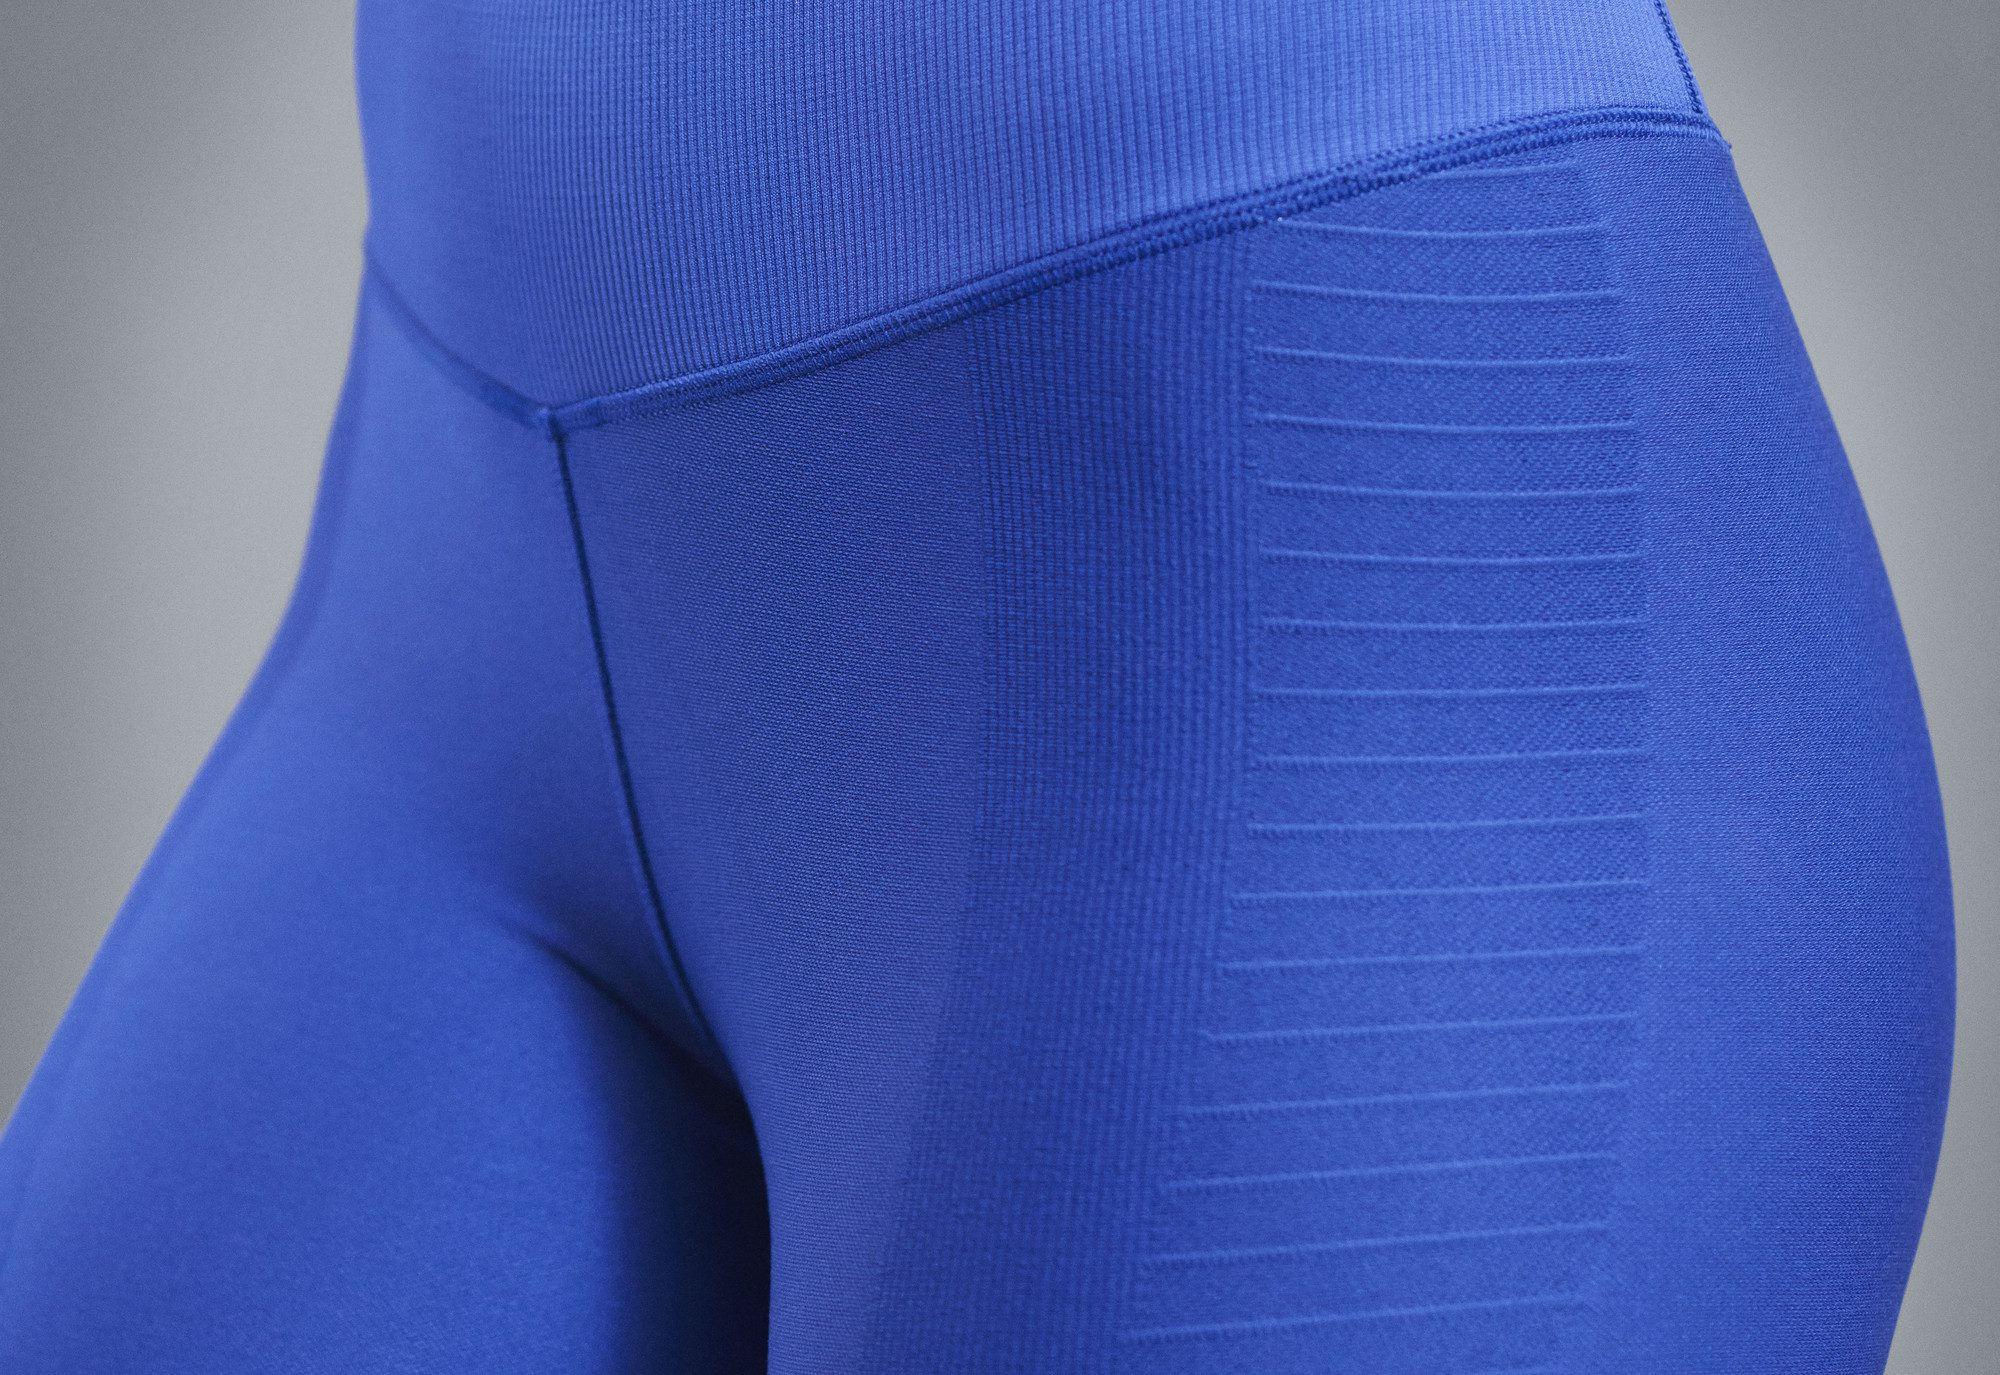 27252a8219 Body in Motion: Nike Tights - Ape to Gentleman